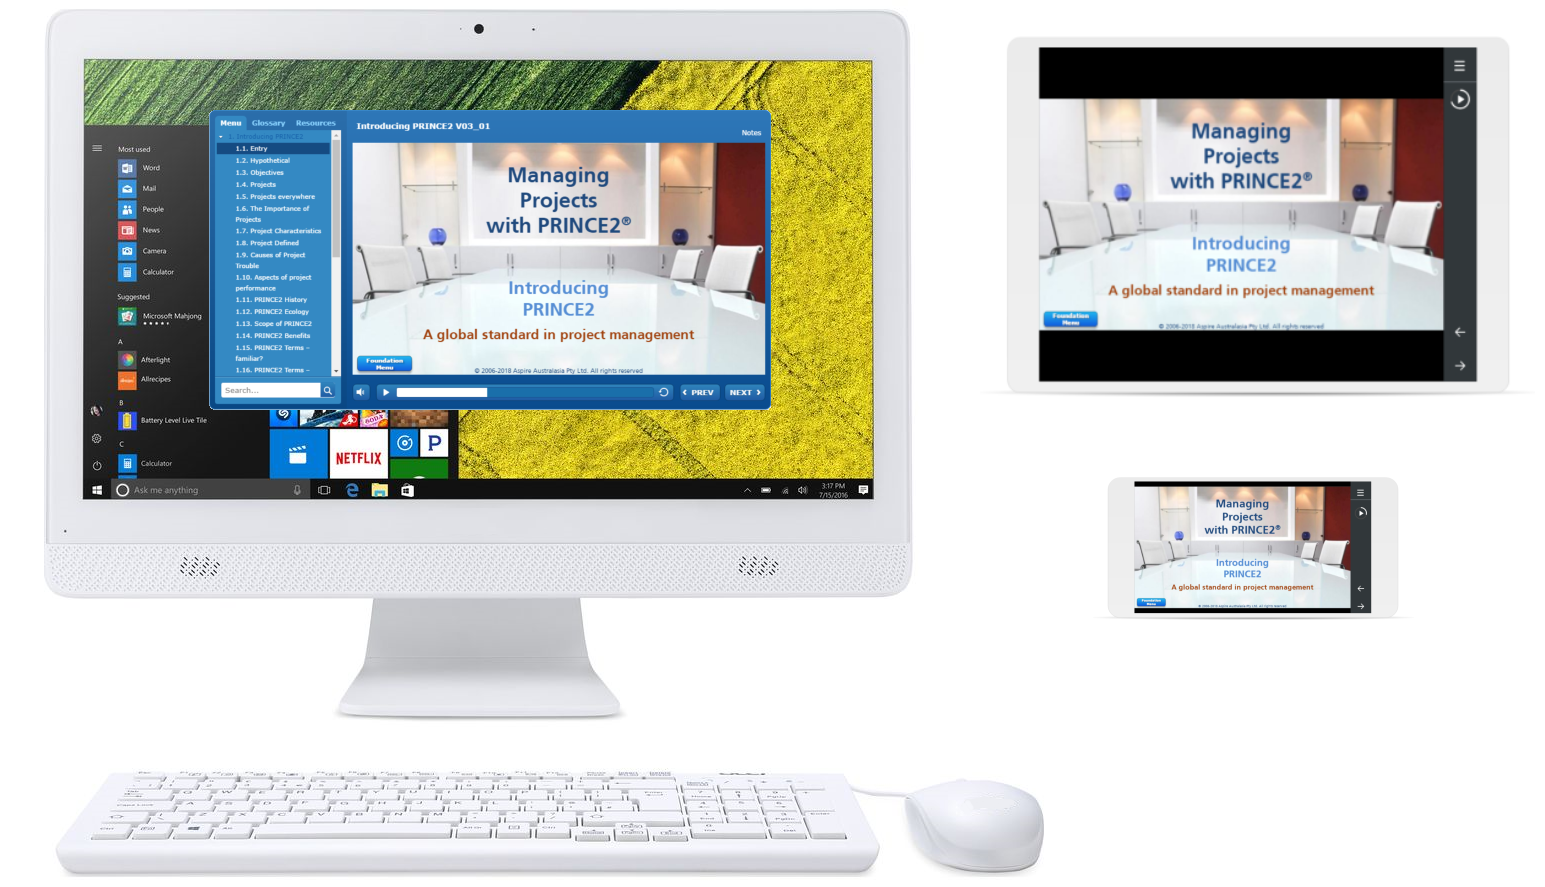 Inspiring Projects: Online training courses and